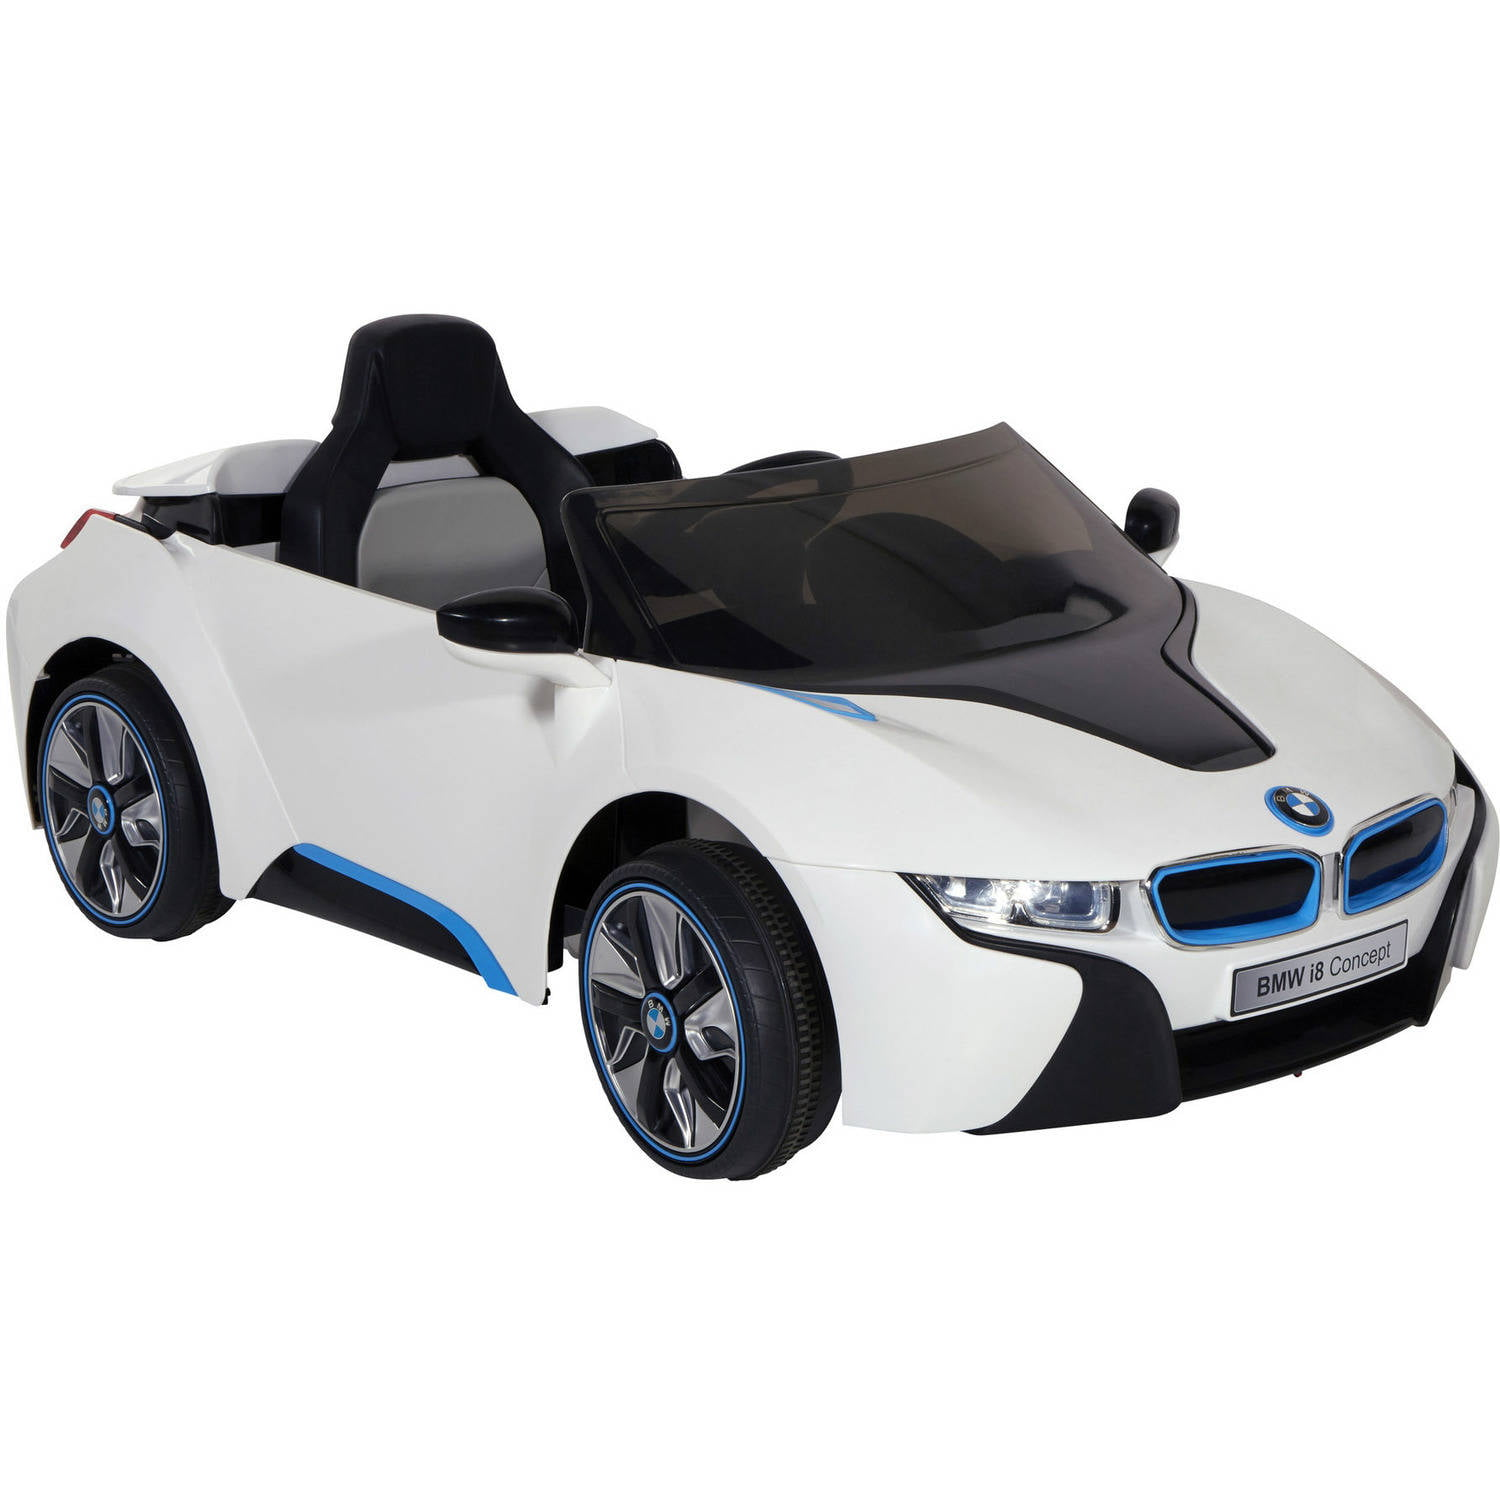 Dynacraft 6v Bmw I8 Concept Kids Play Black White Ride On Car